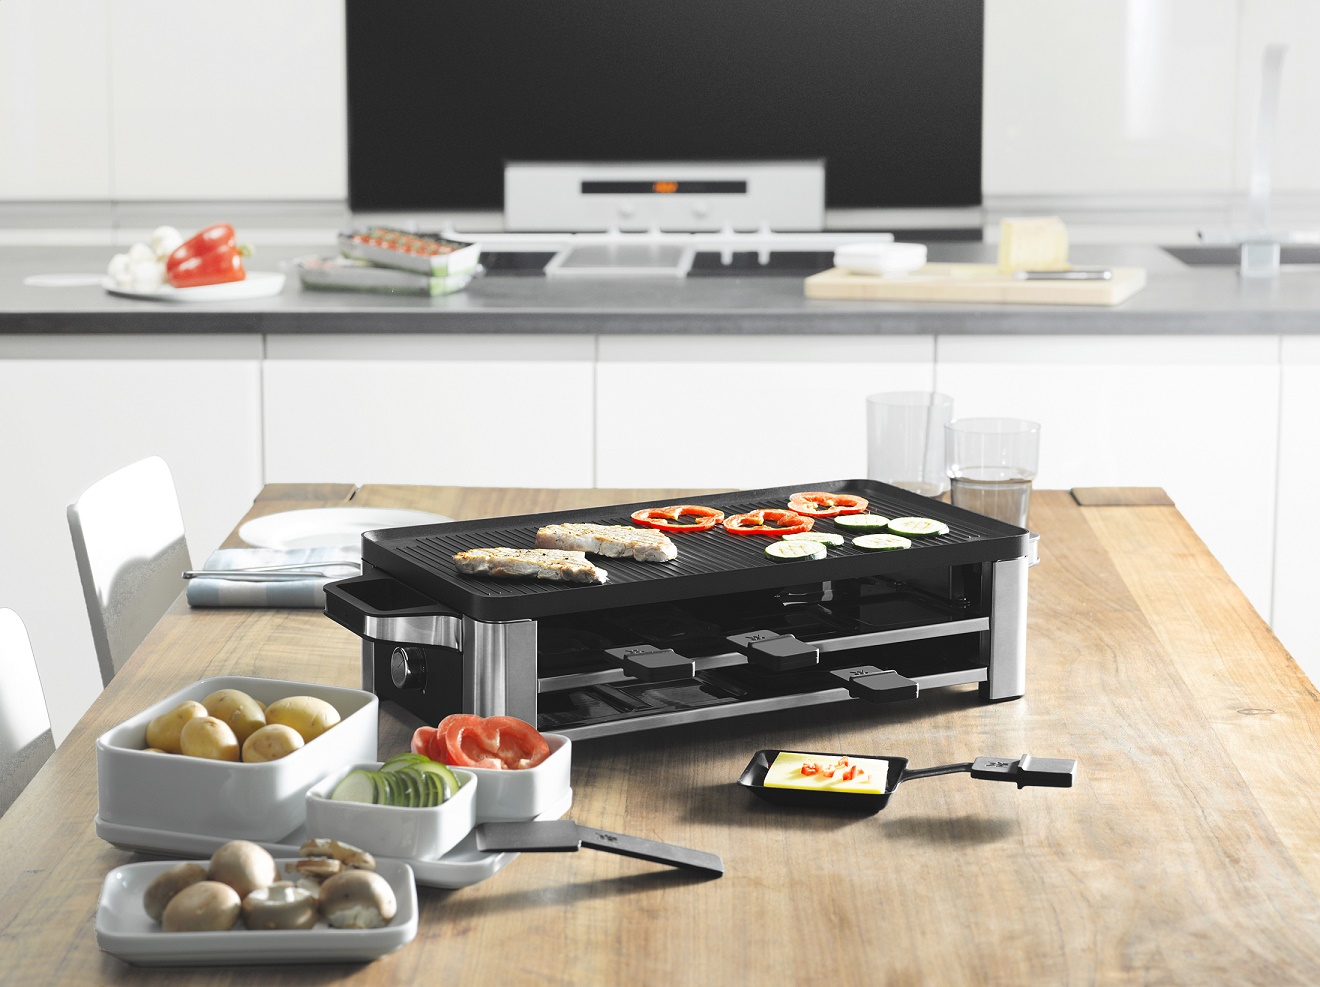 Wmf Lono Raclette Grill Newformsdesign Small Appliances